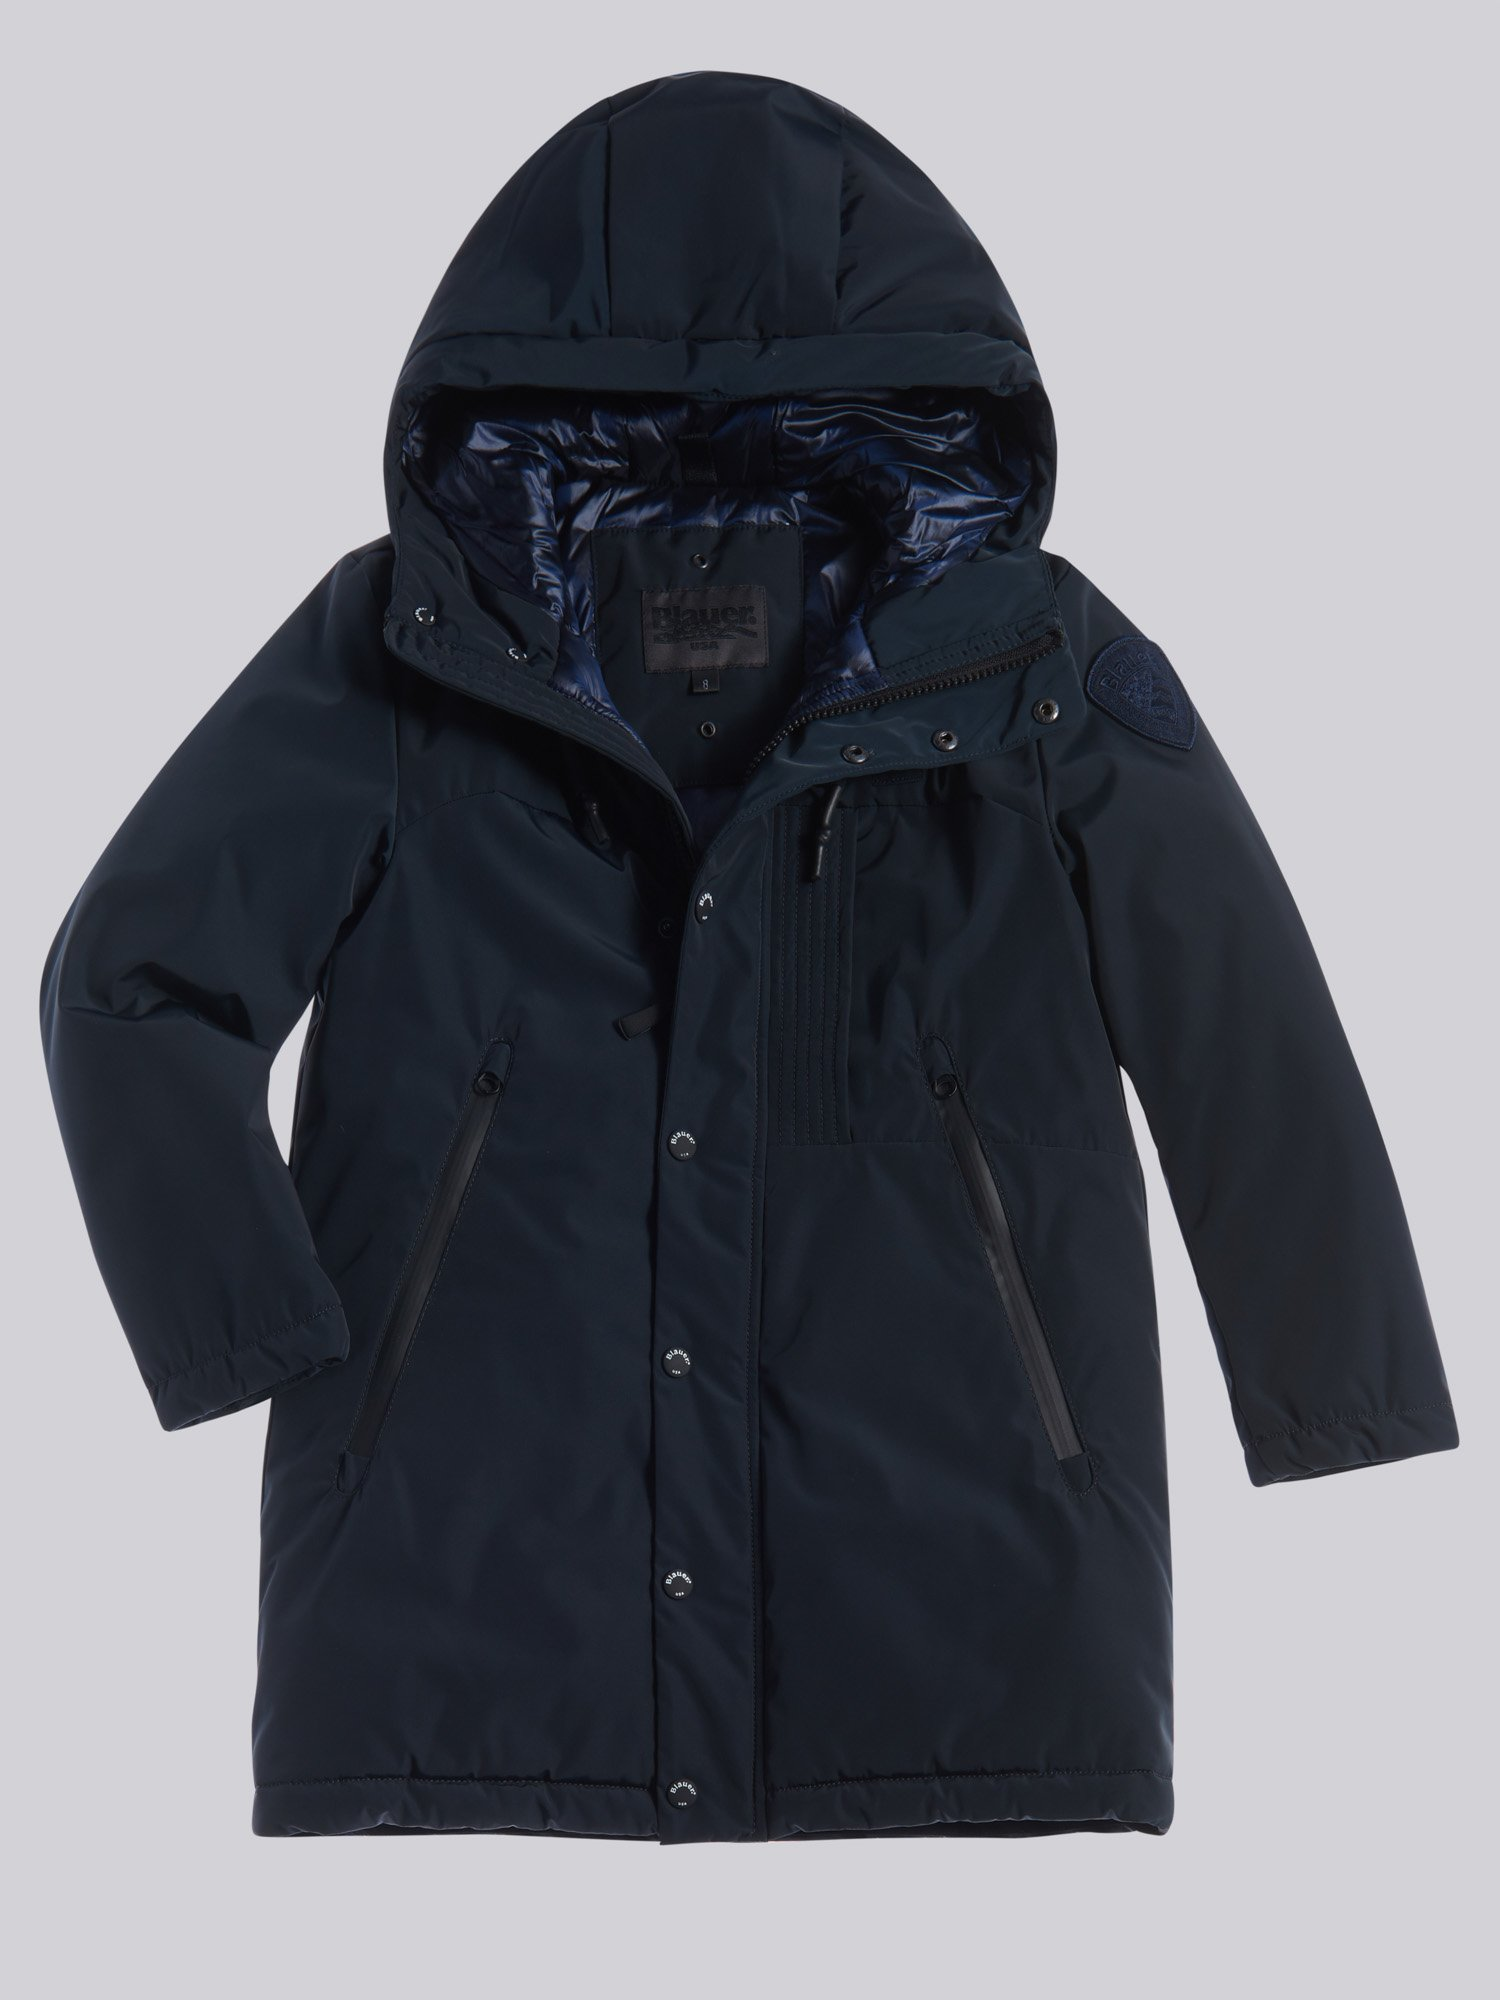 ALLEN LONG TECHNICAL JACKET - Blauer